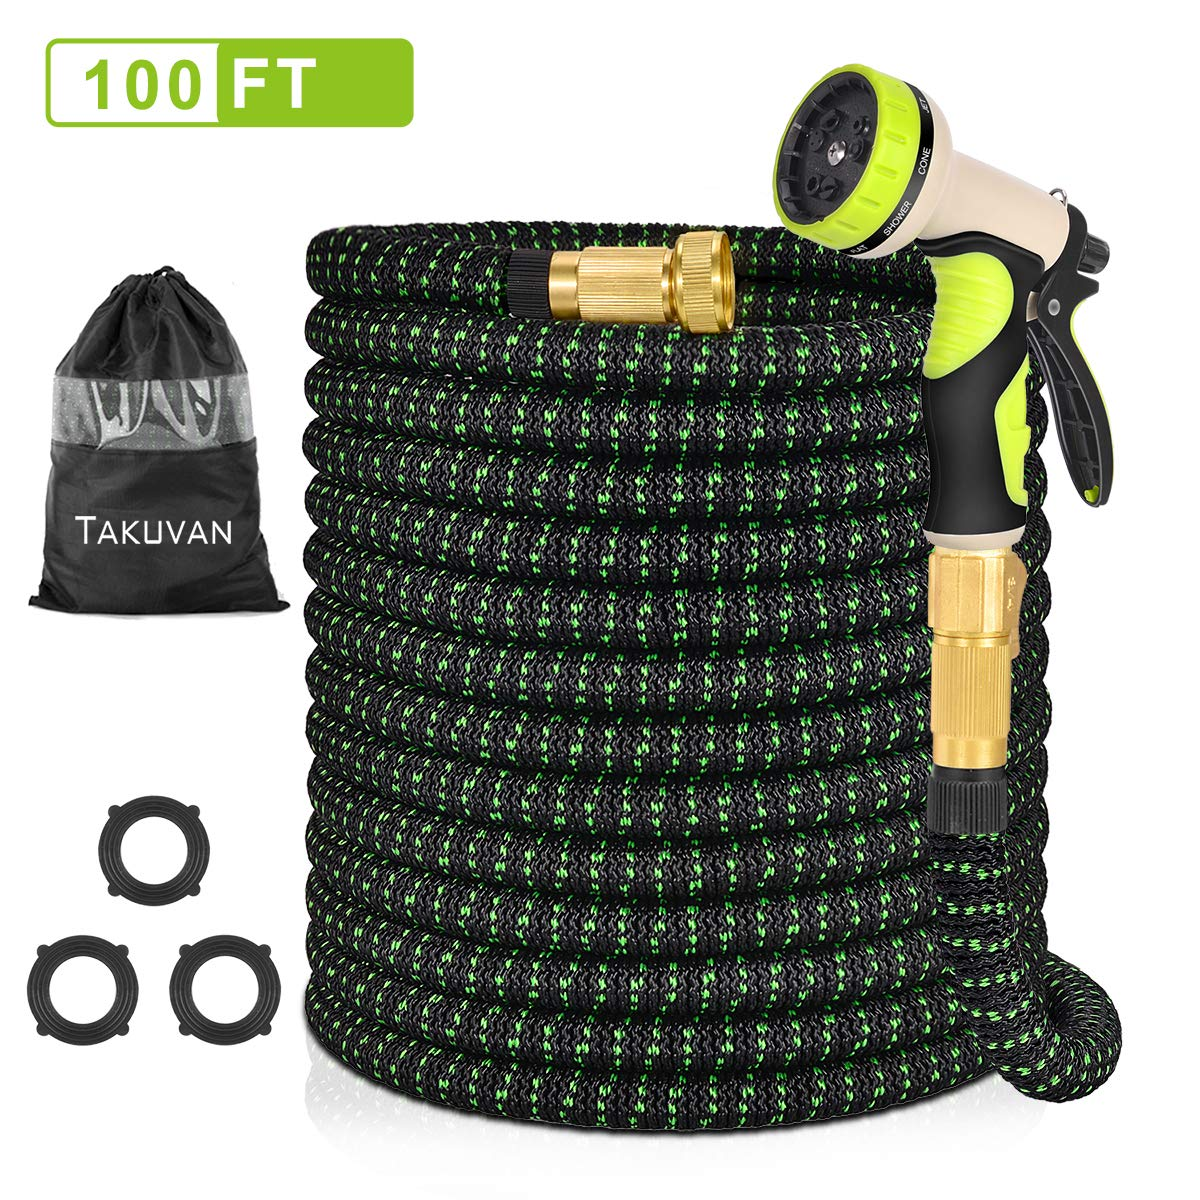 "Takuvan 100ft Expandable Garden Hose, 100 Feet Upgraded Water Hose, Durable Flexible Hose with 9 Spray Patterns Hose Nozzle, 3/4"" Solid Brass Connectors, Leakproof Lightweight Expanding Hose"